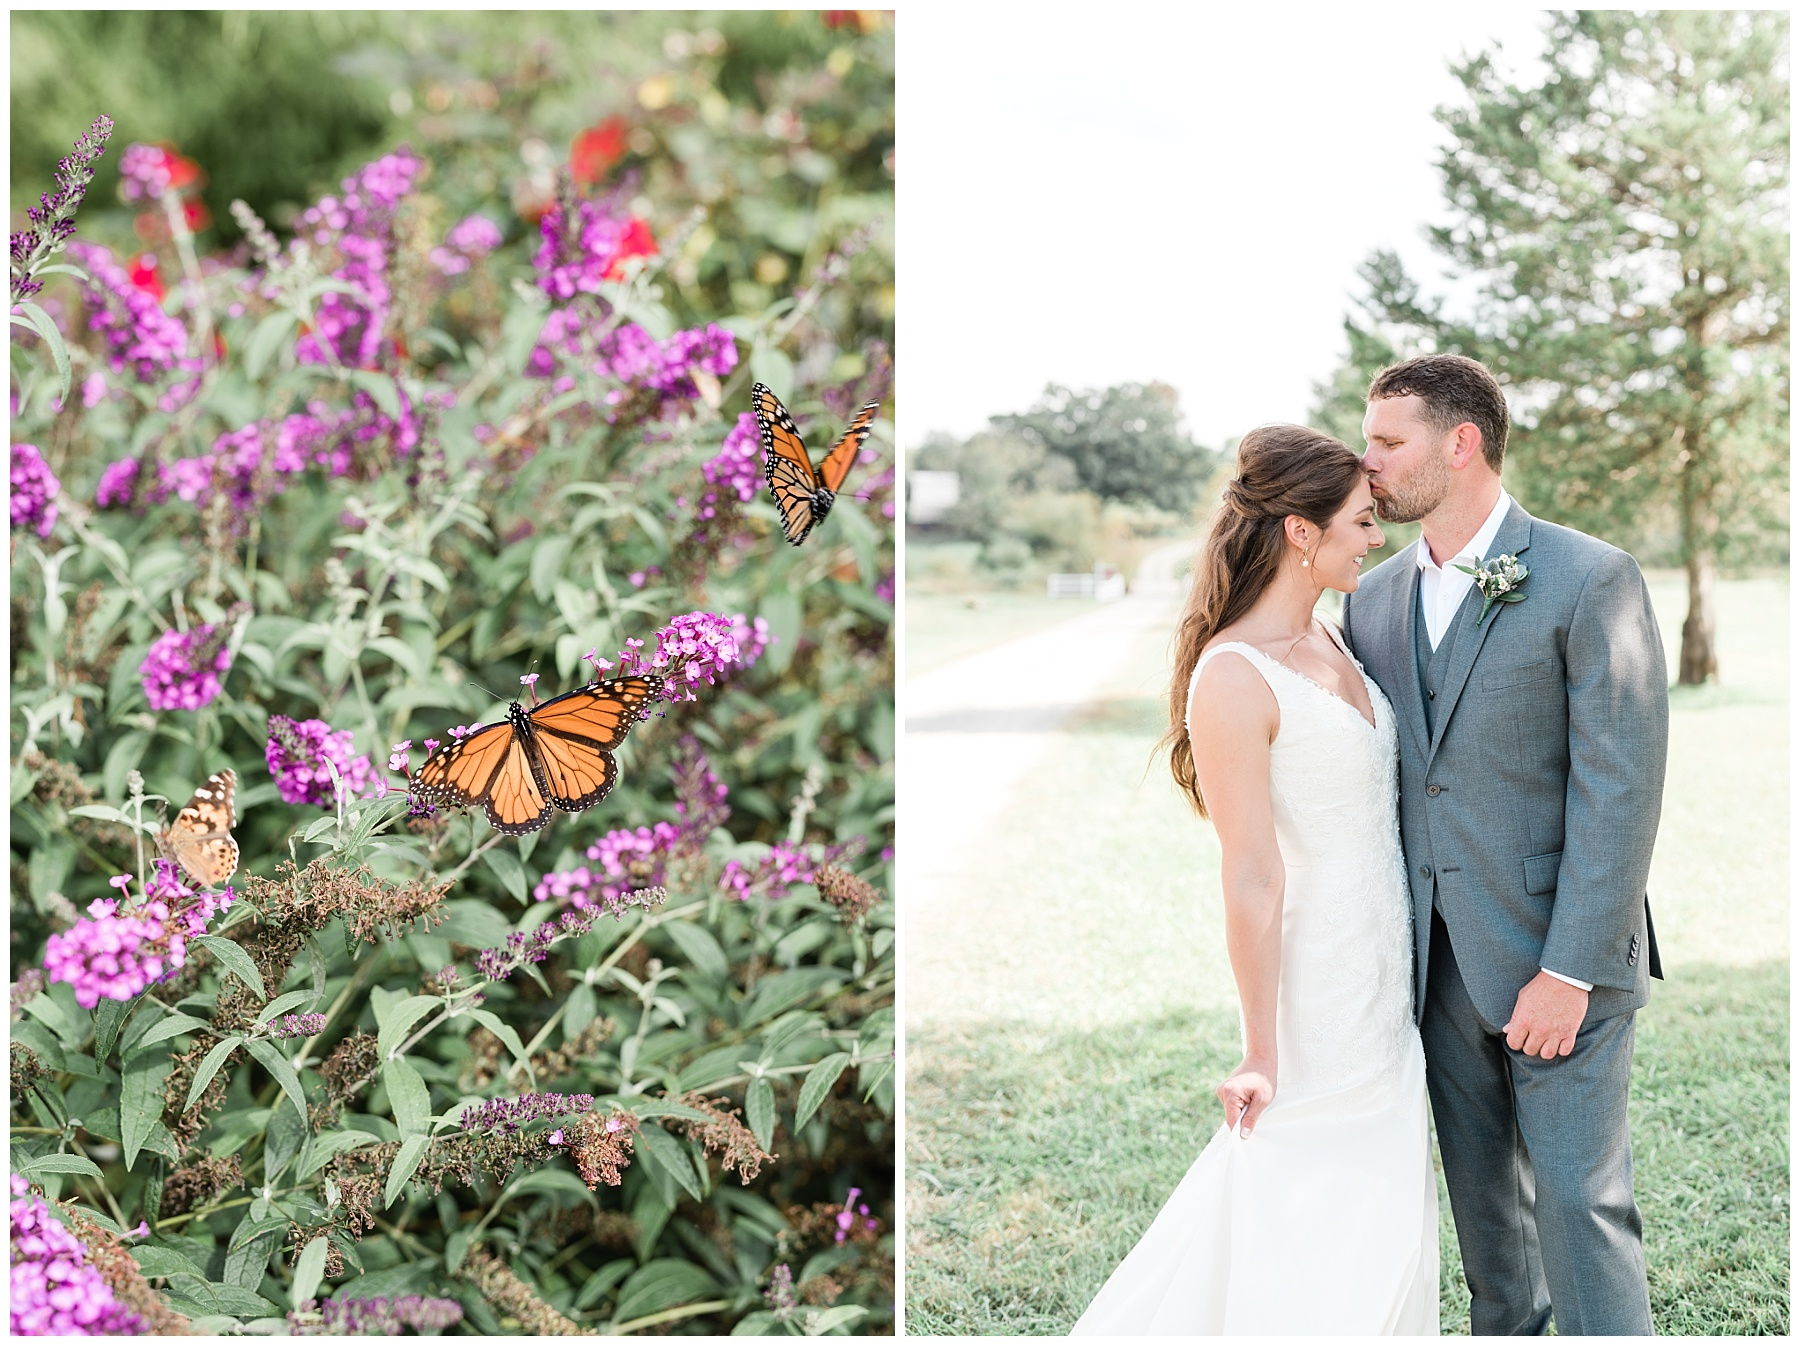 Fine Art Sunset Themed Wedding in Autumn at Dodson Orchards by Kelsi Kliethermes Photography_0029.jpg